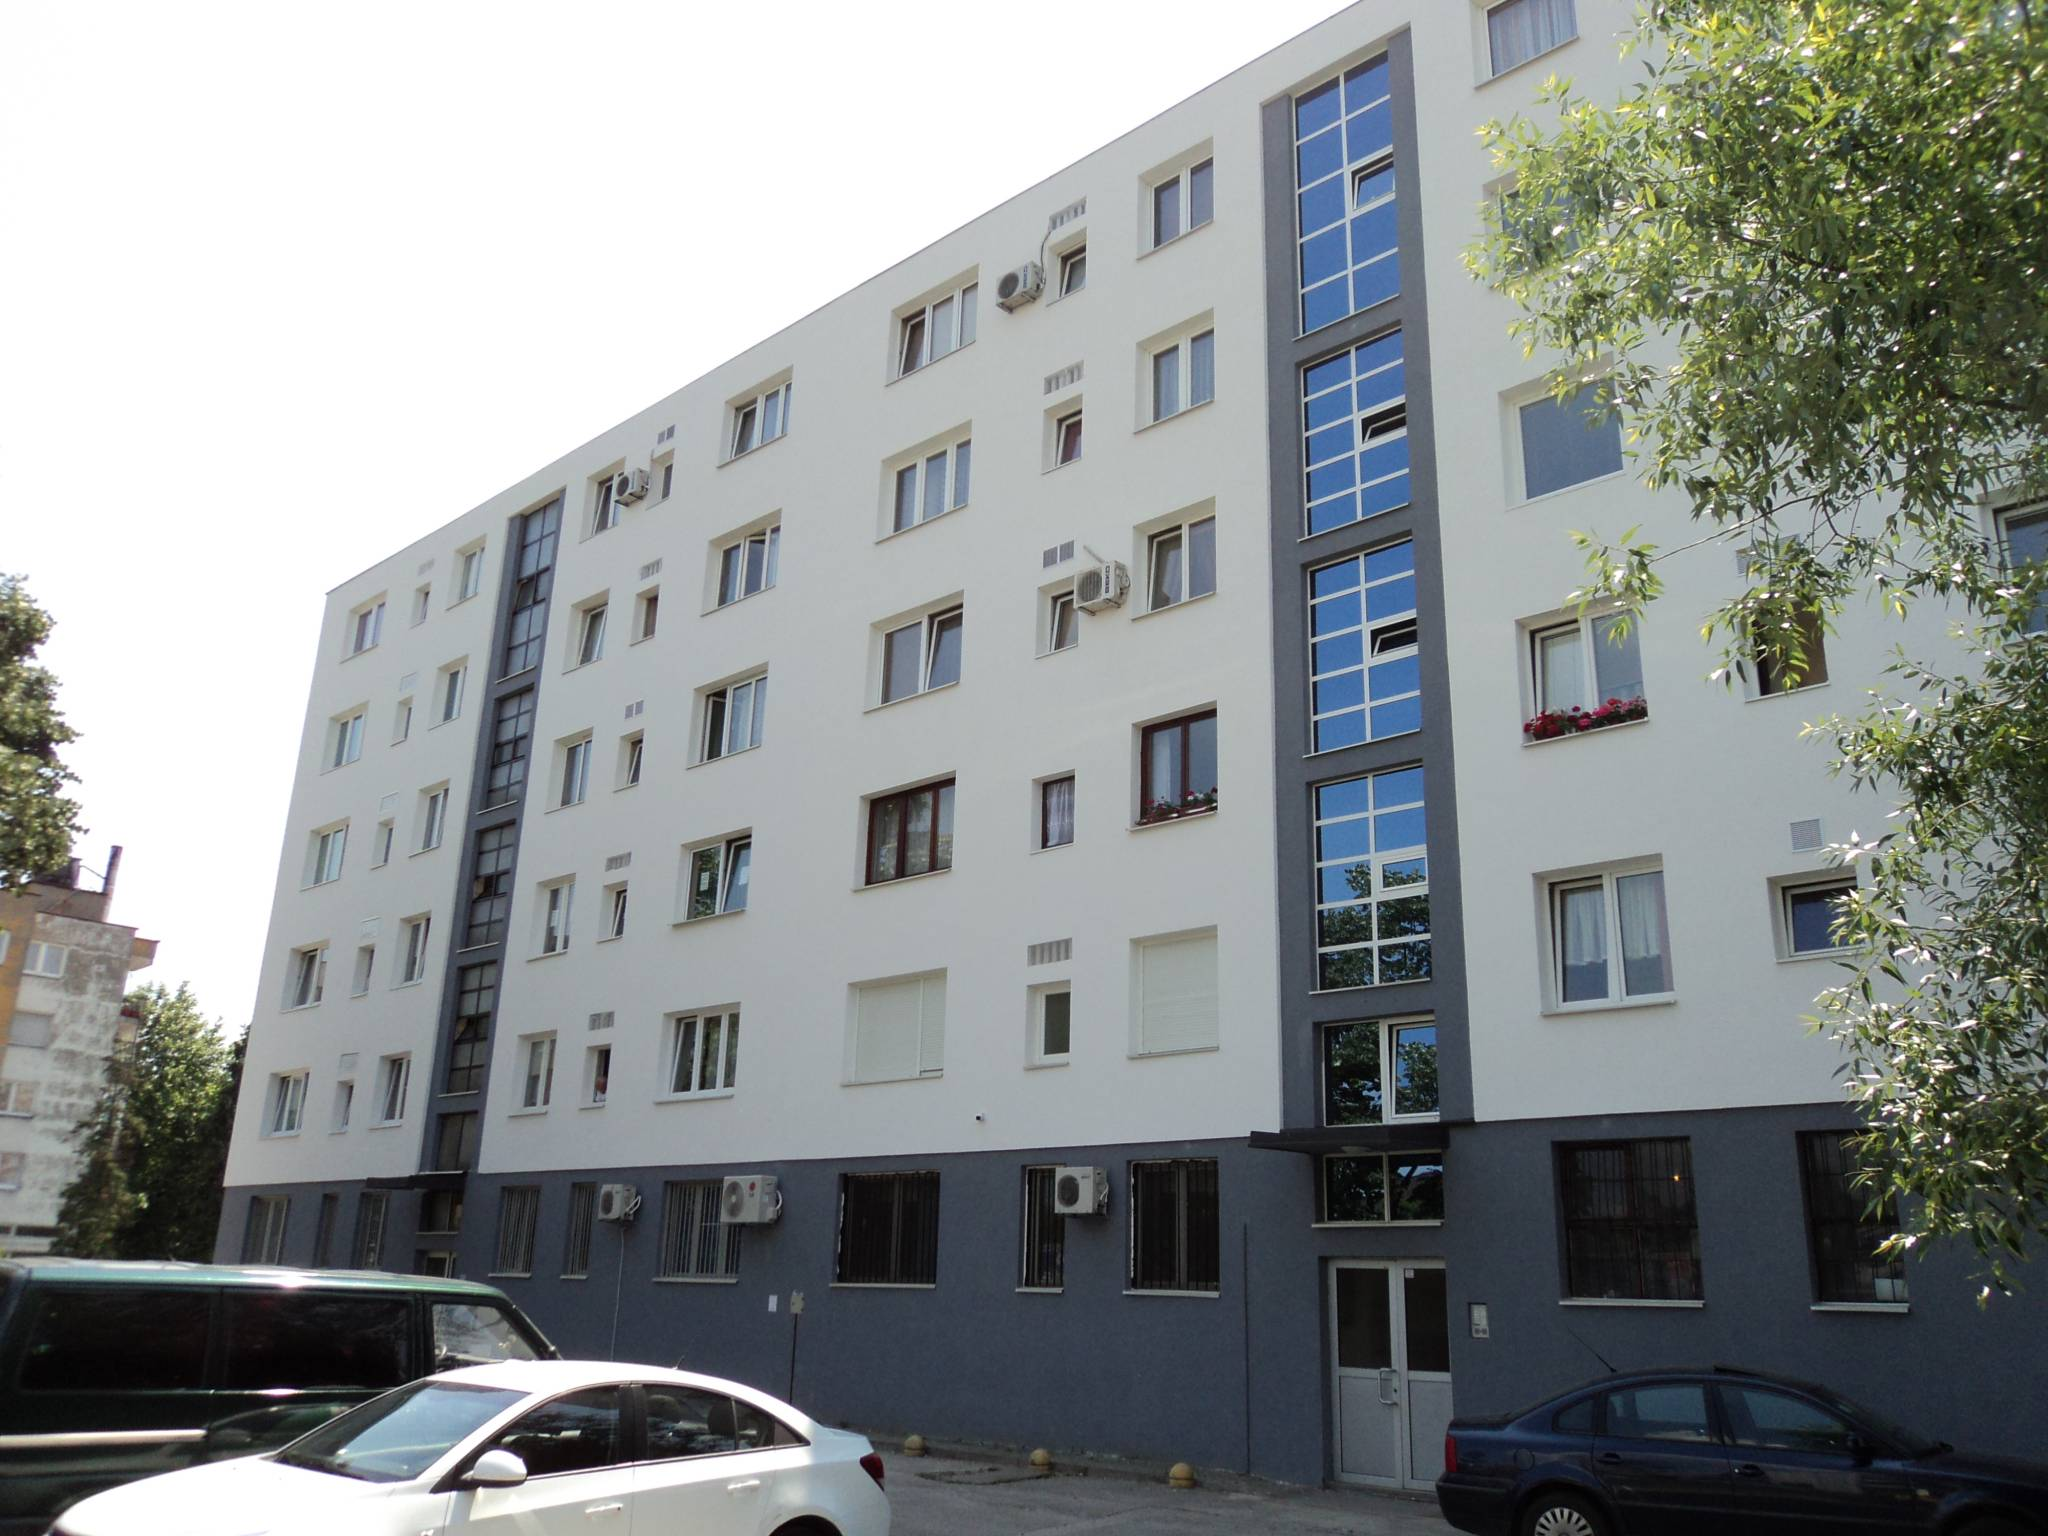 Energy Efficient Renovations : Improving living conditions in romania national subsidy